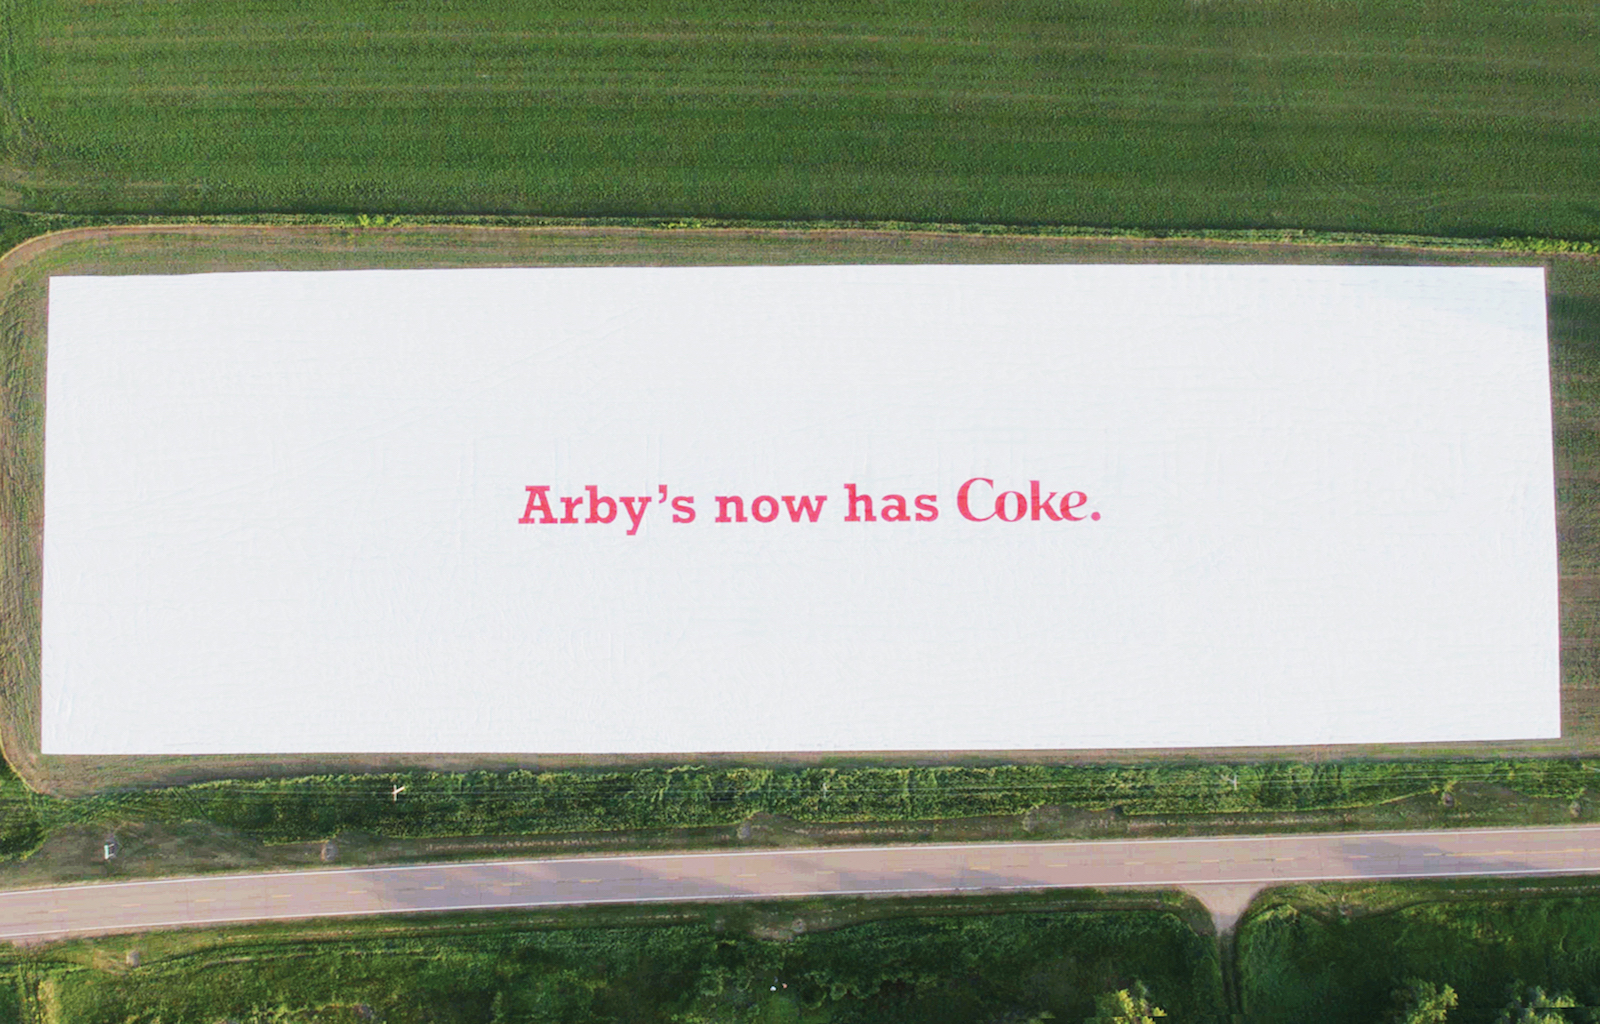 Arby's world's largest advertisement